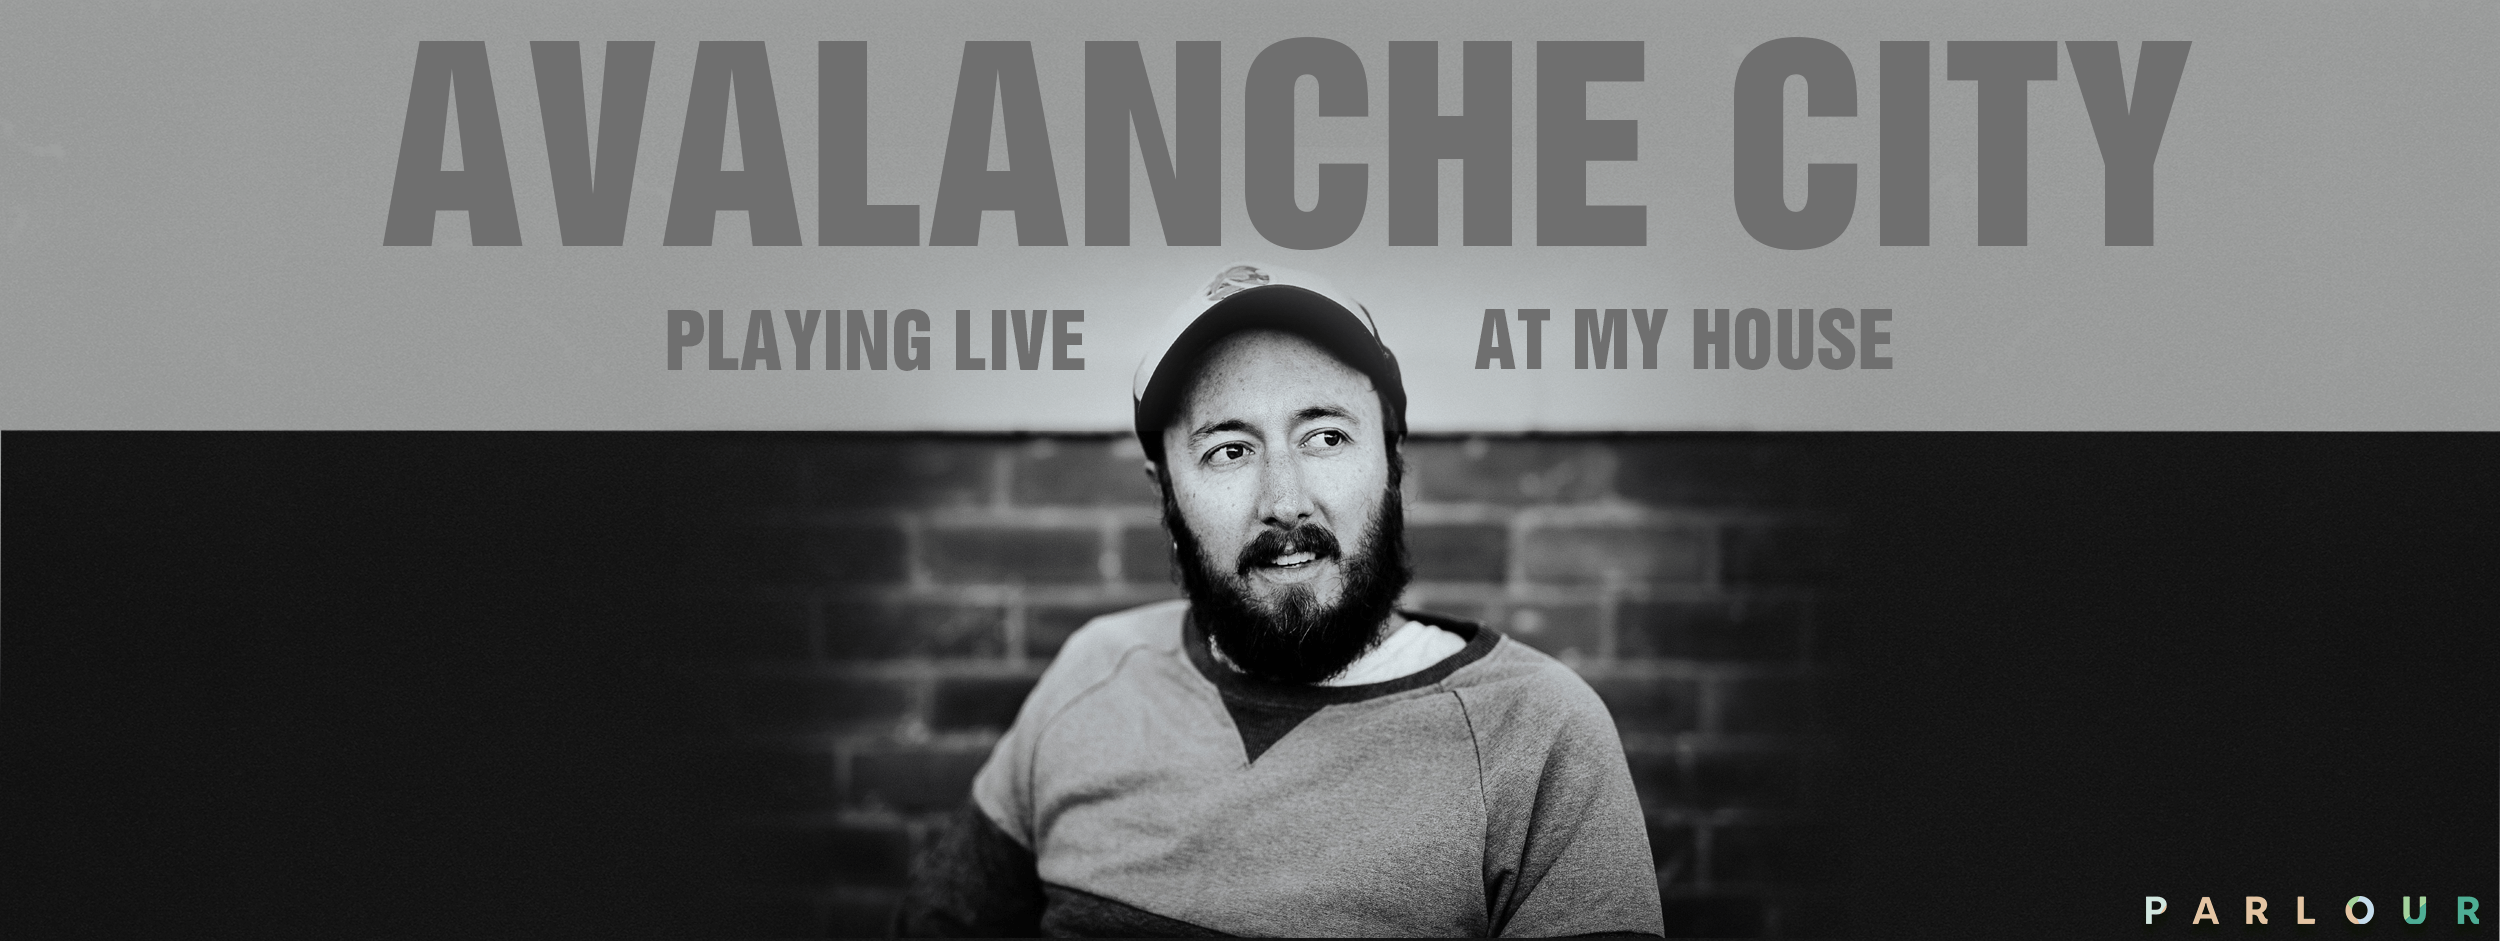 Avalanche City Banner.png